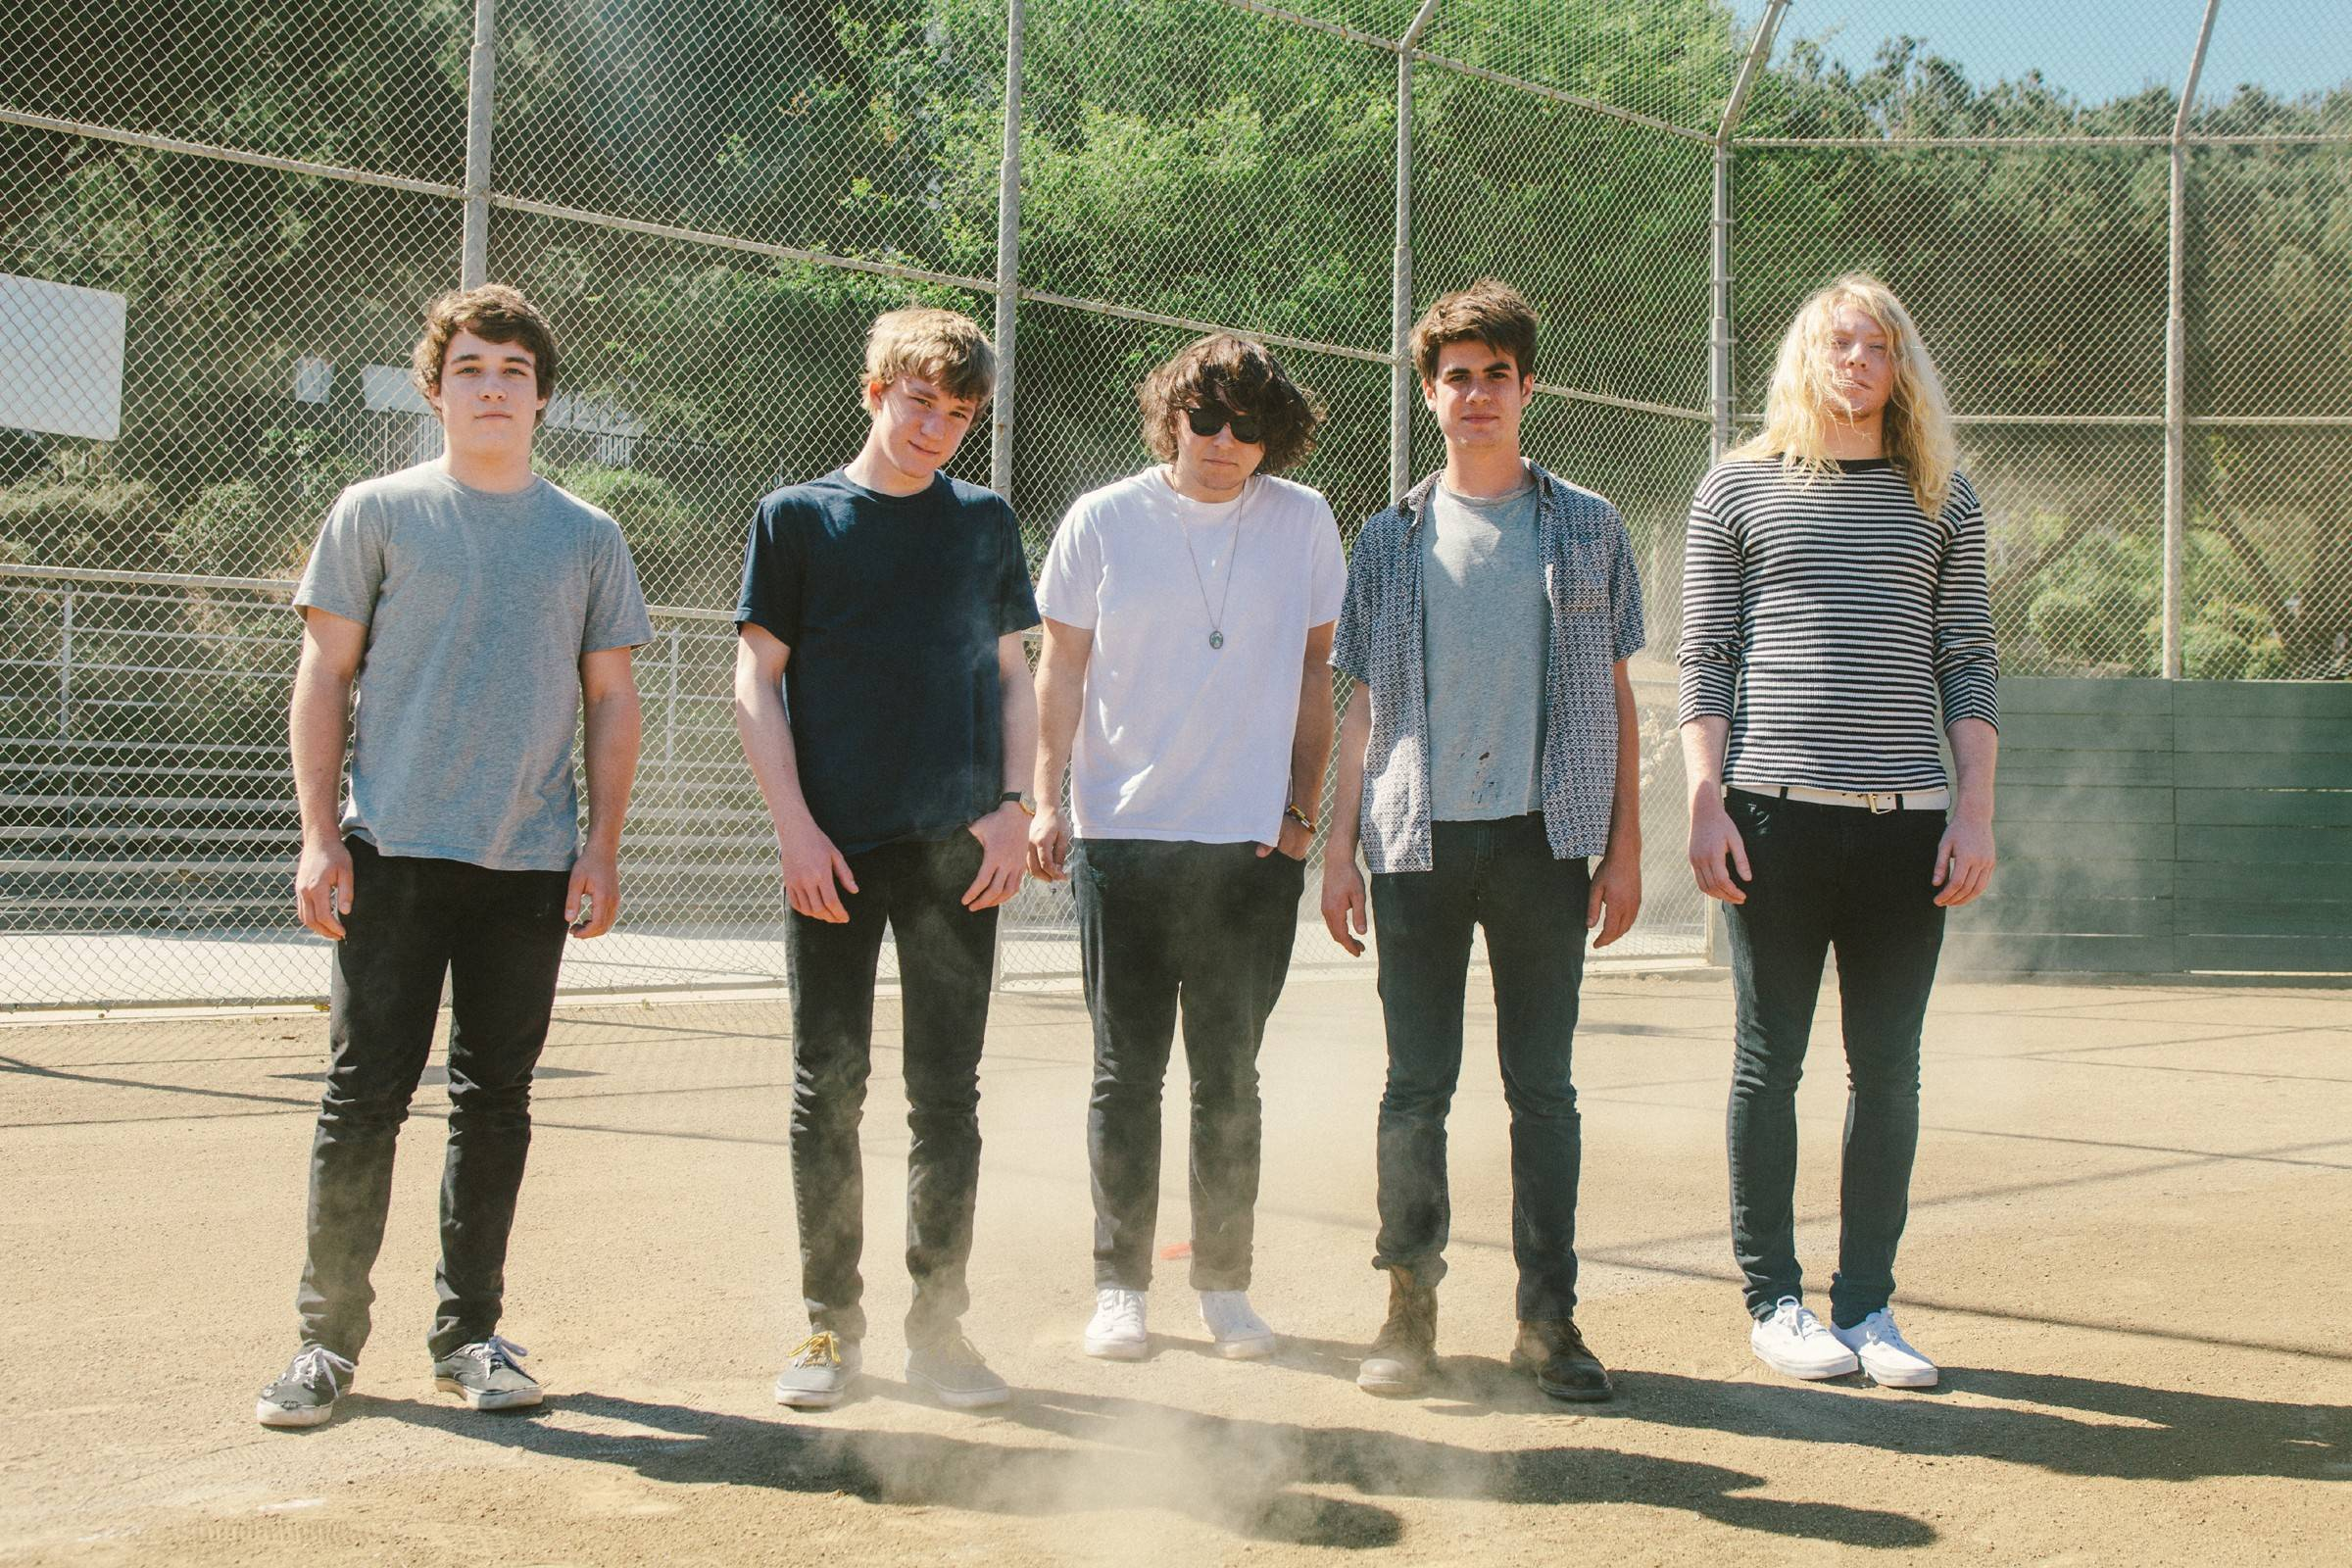 The Orwells, a punk-pop band from Elmhurst, is one of the bands with suburban roots in the lineup for Riot Fest, the annual three-day rock event taking place in September. Tickets for the fest are available now.